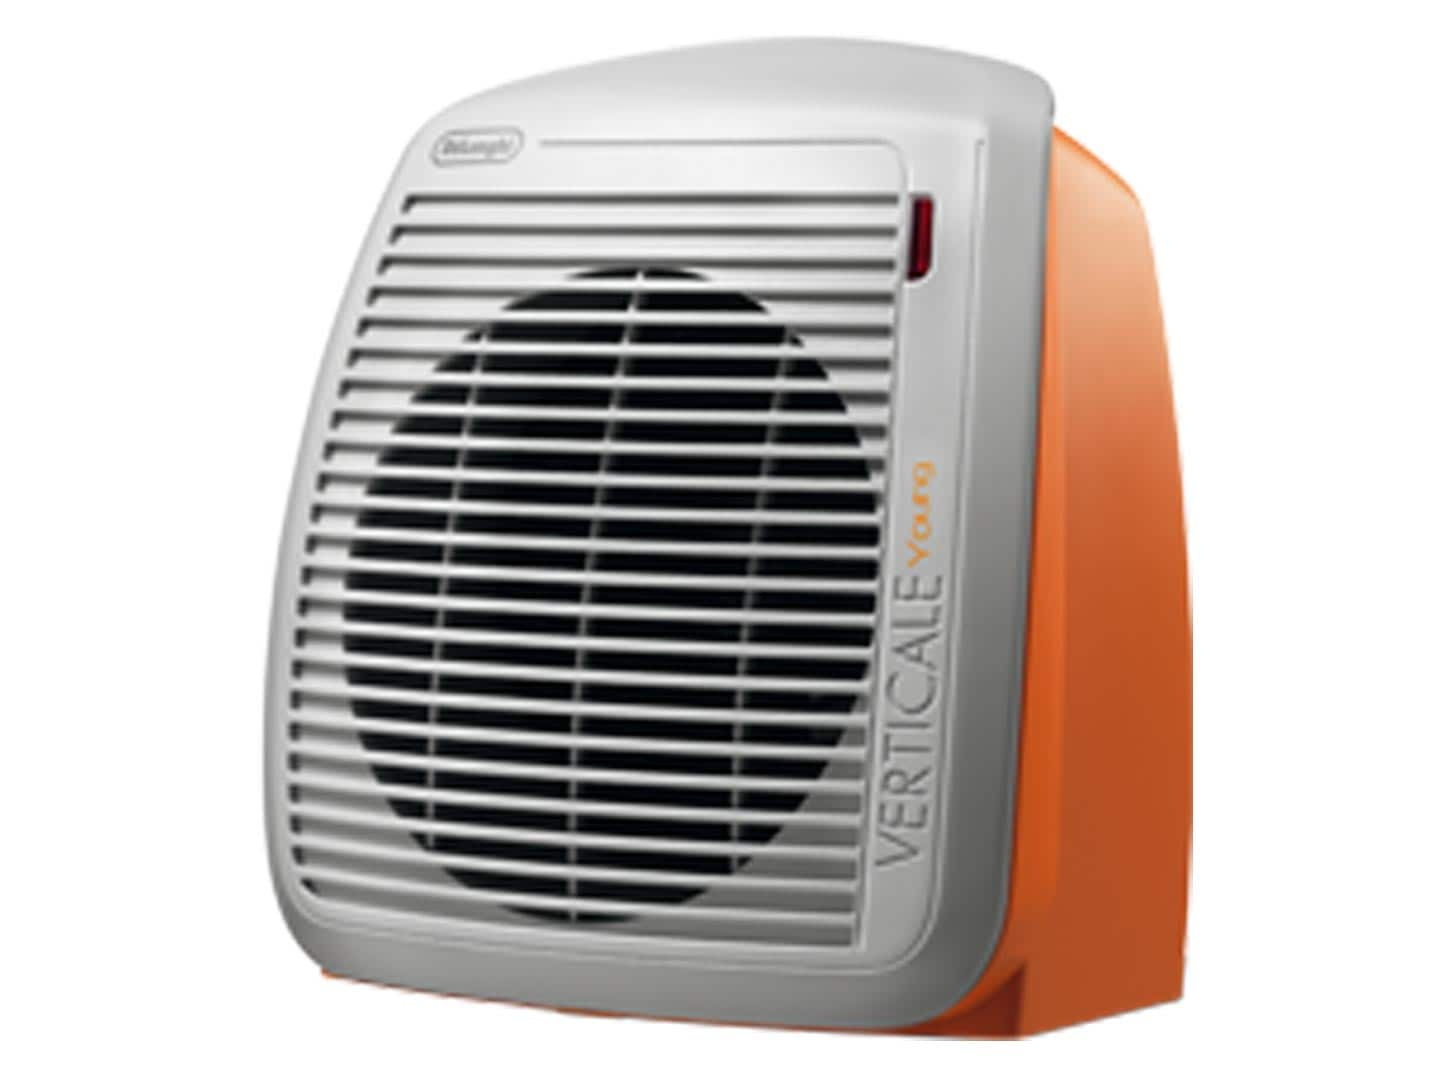 Verticale Young HVY1030.O portable heater